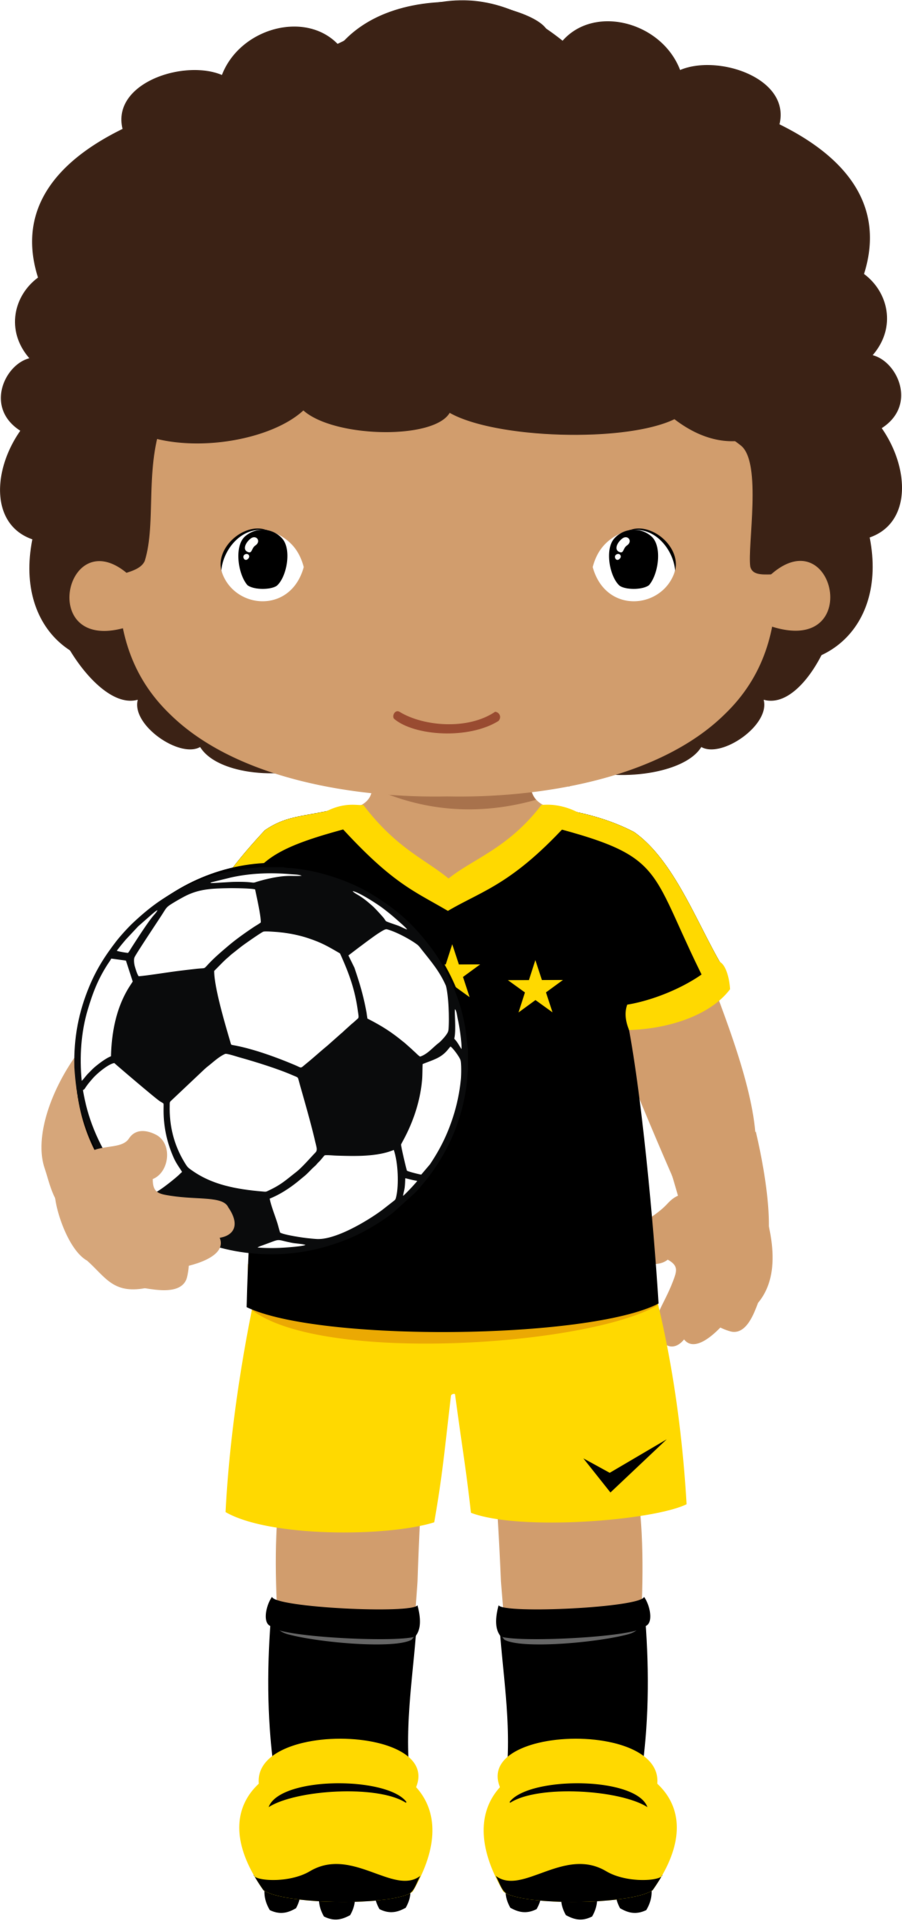 shared ver todas. Clipart children football